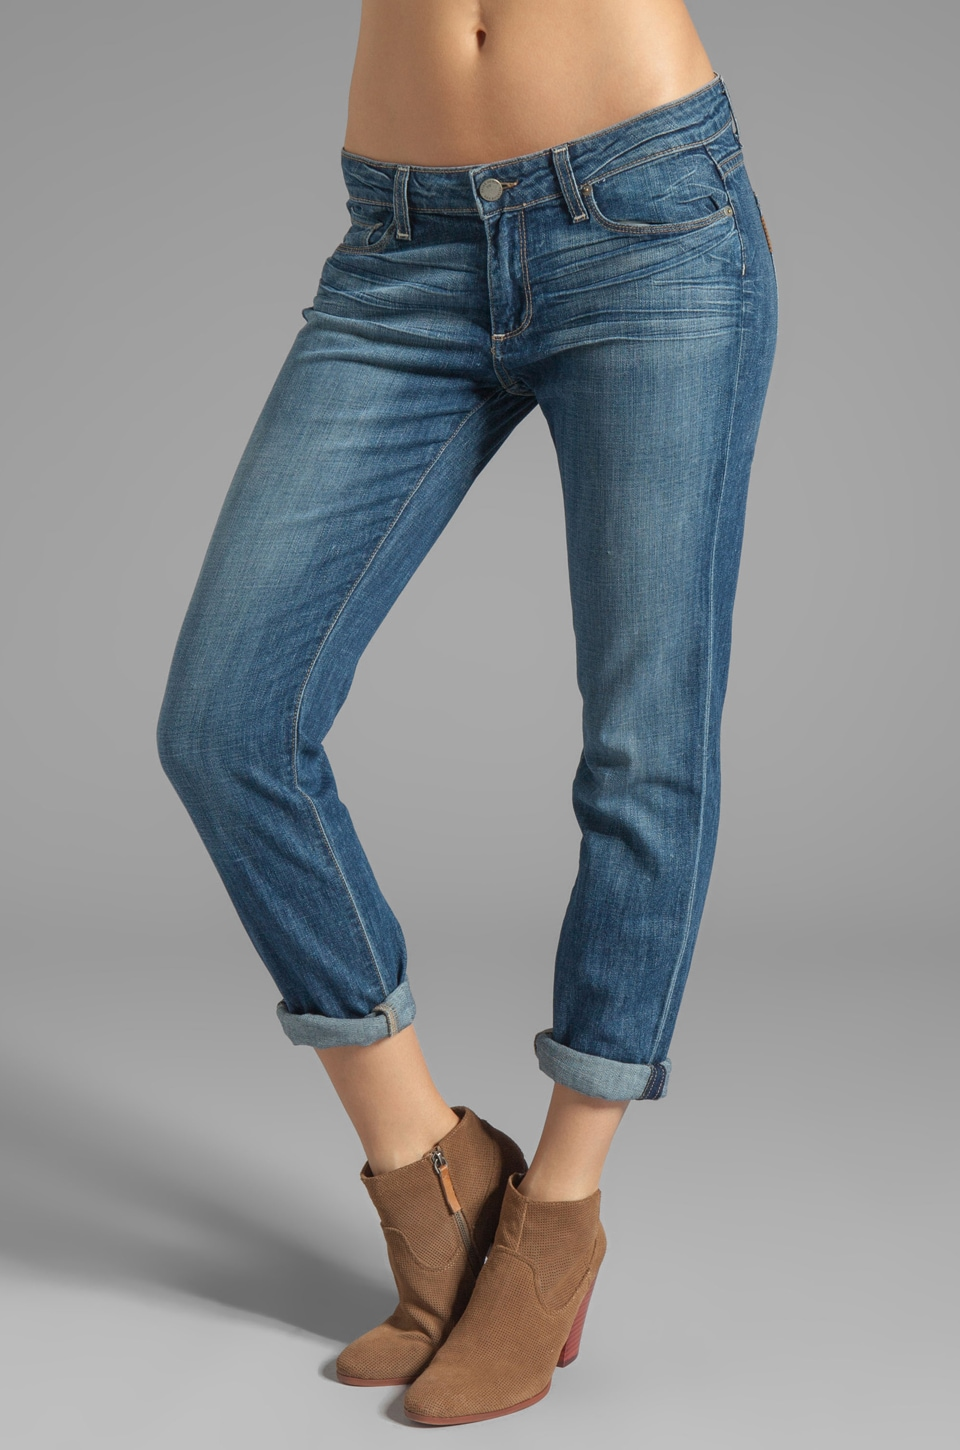 PAIGE Denim Jimmy Jimmy Skinny in Tiger Lily